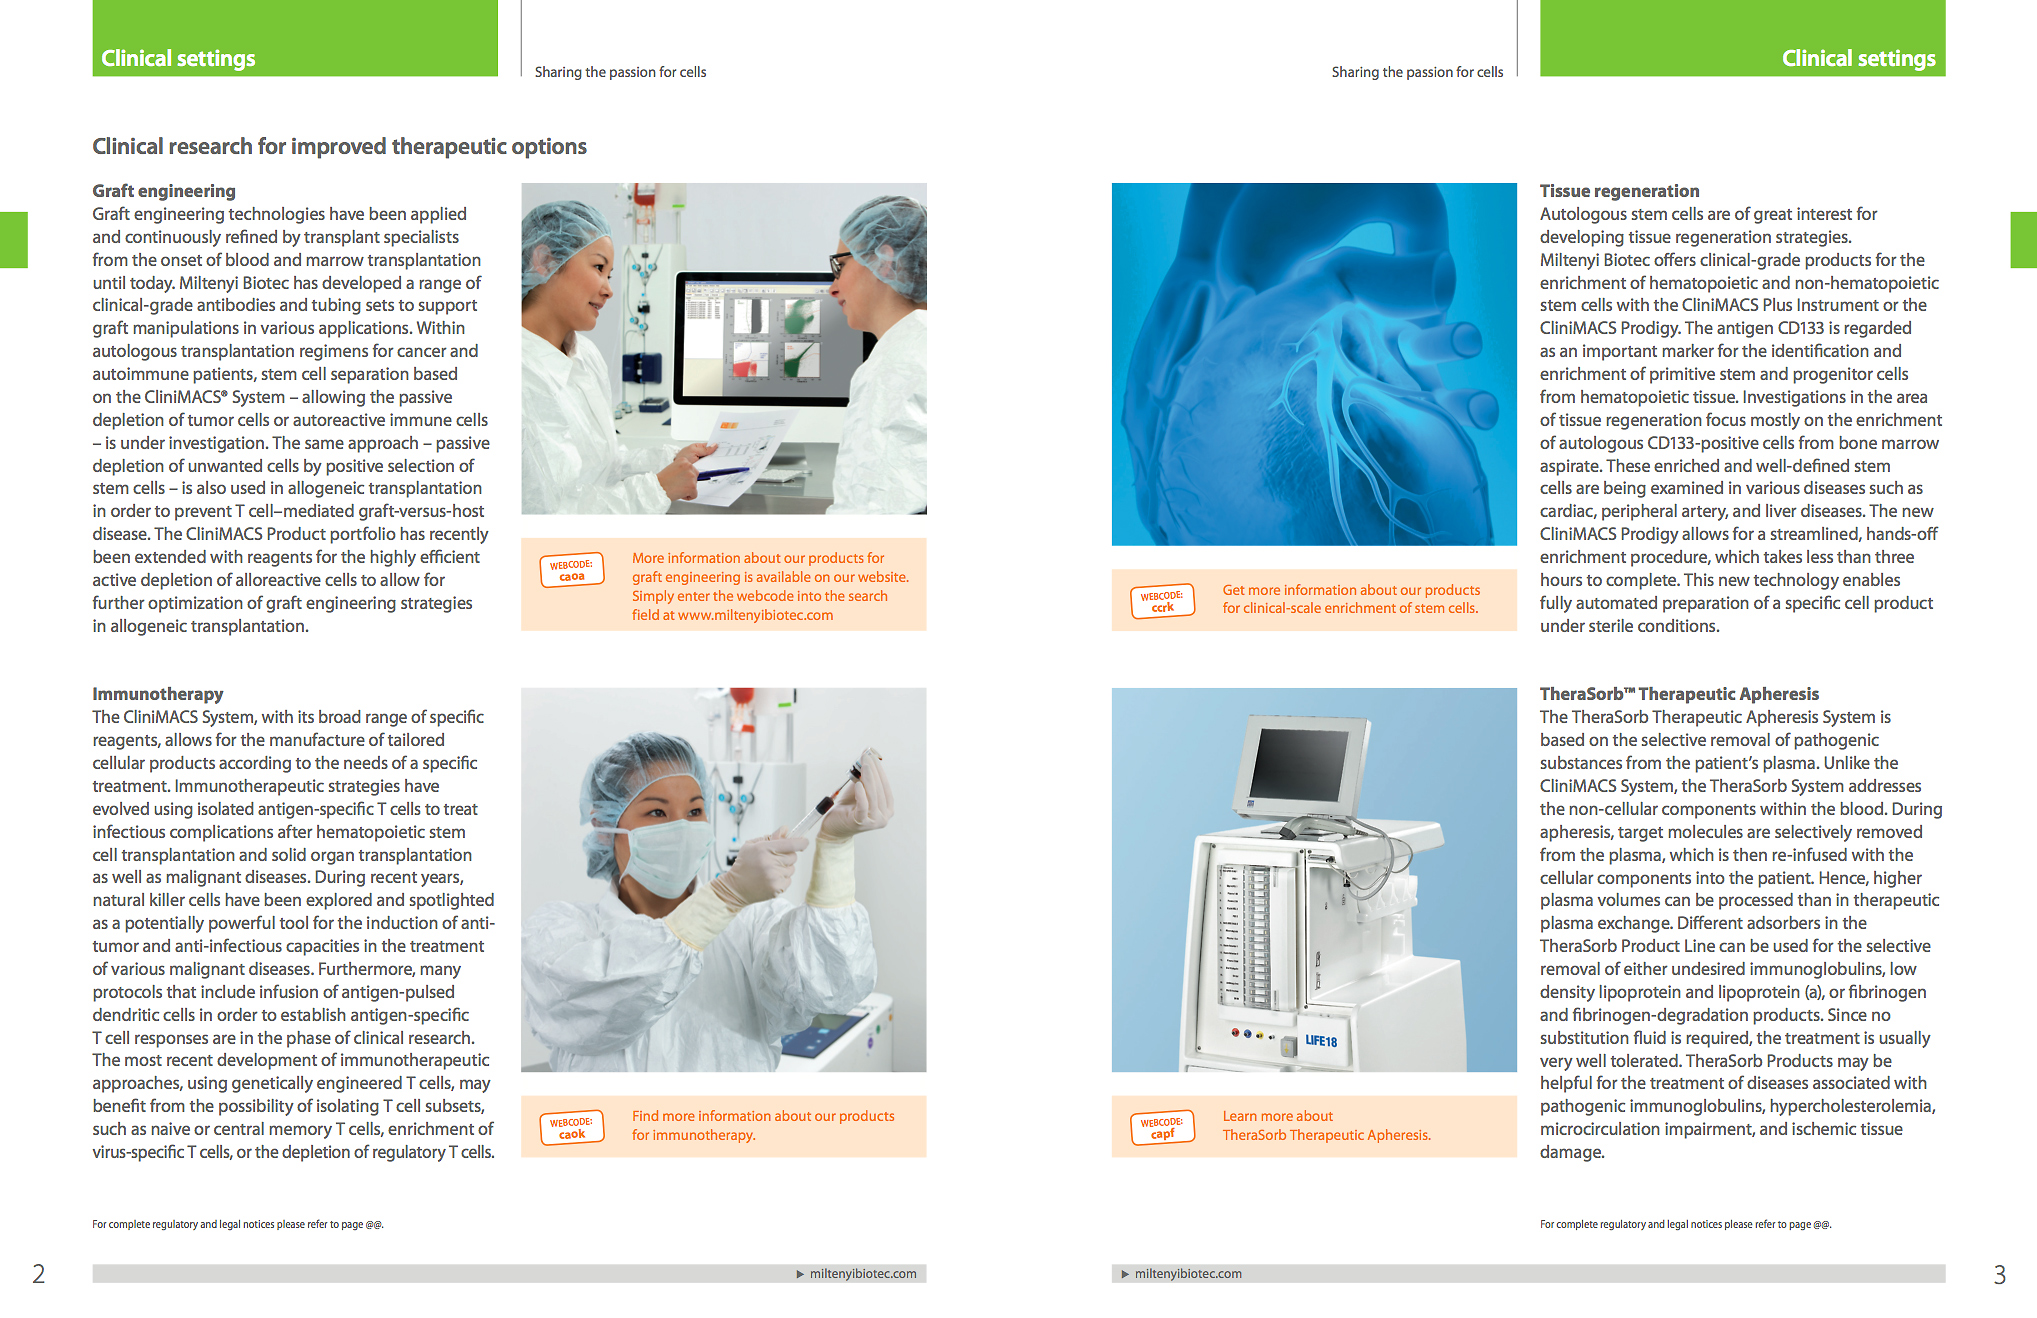 Intro page introduces the clinical section